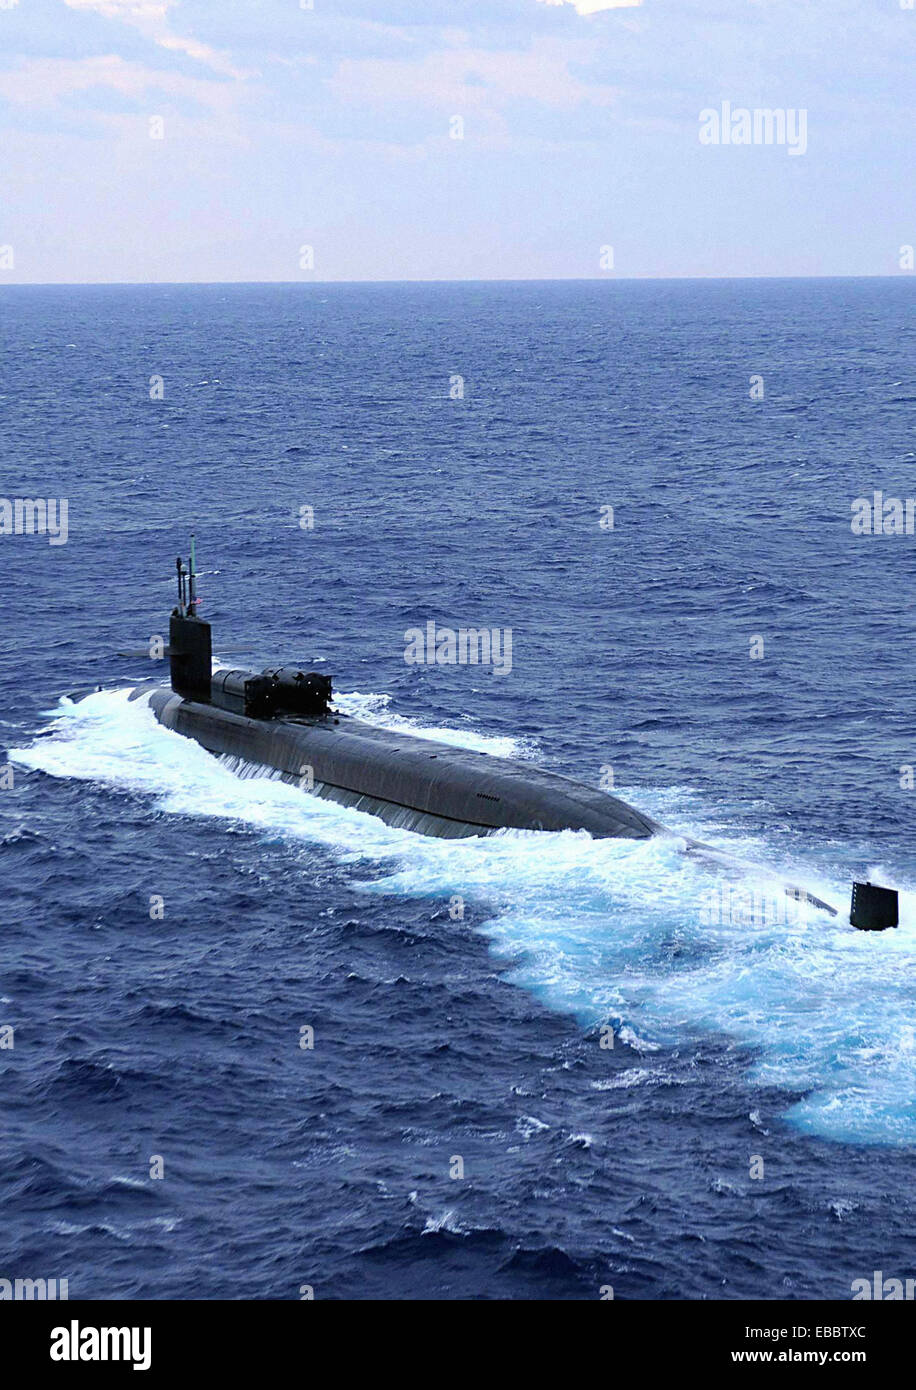 PACIFIC OCEAN (Nov. 19, 2008) The guided-missile submarine USS Ohio (SSGN 726) is underway during ANNUALEX 2008. - Stock Image